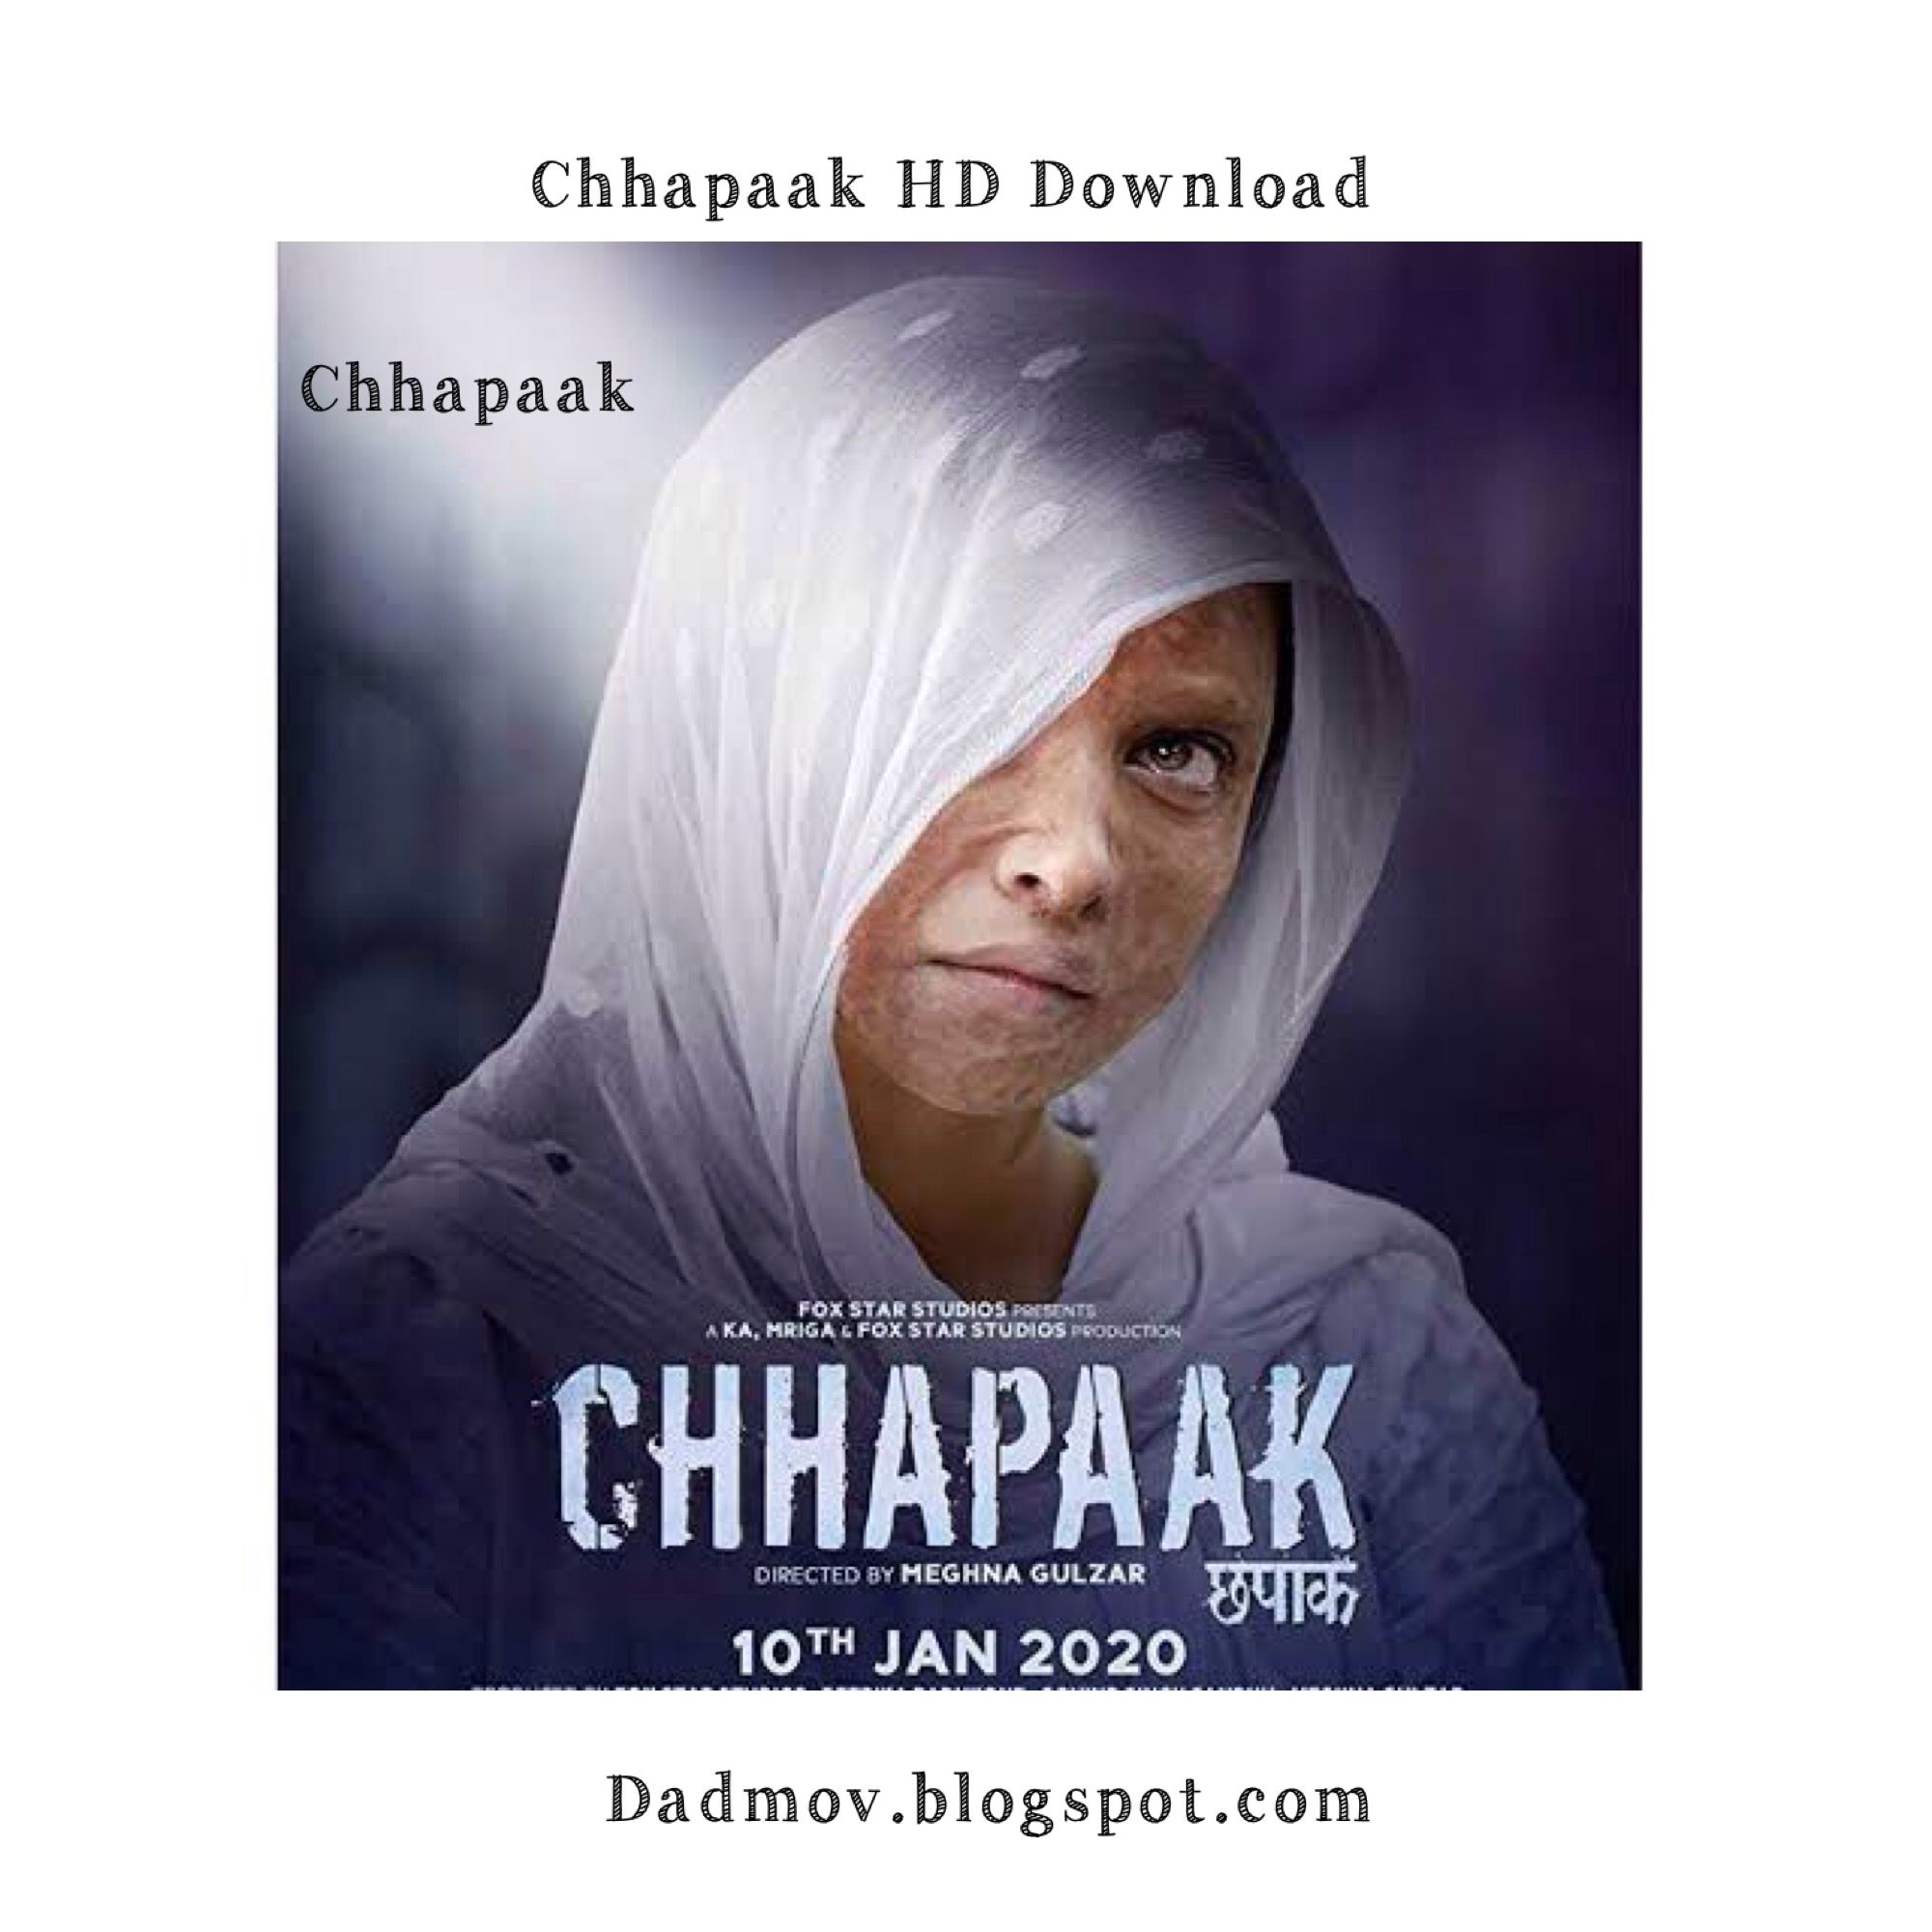 Chhapaak Bollywood Movie Hd Download In 2020 Download Movies